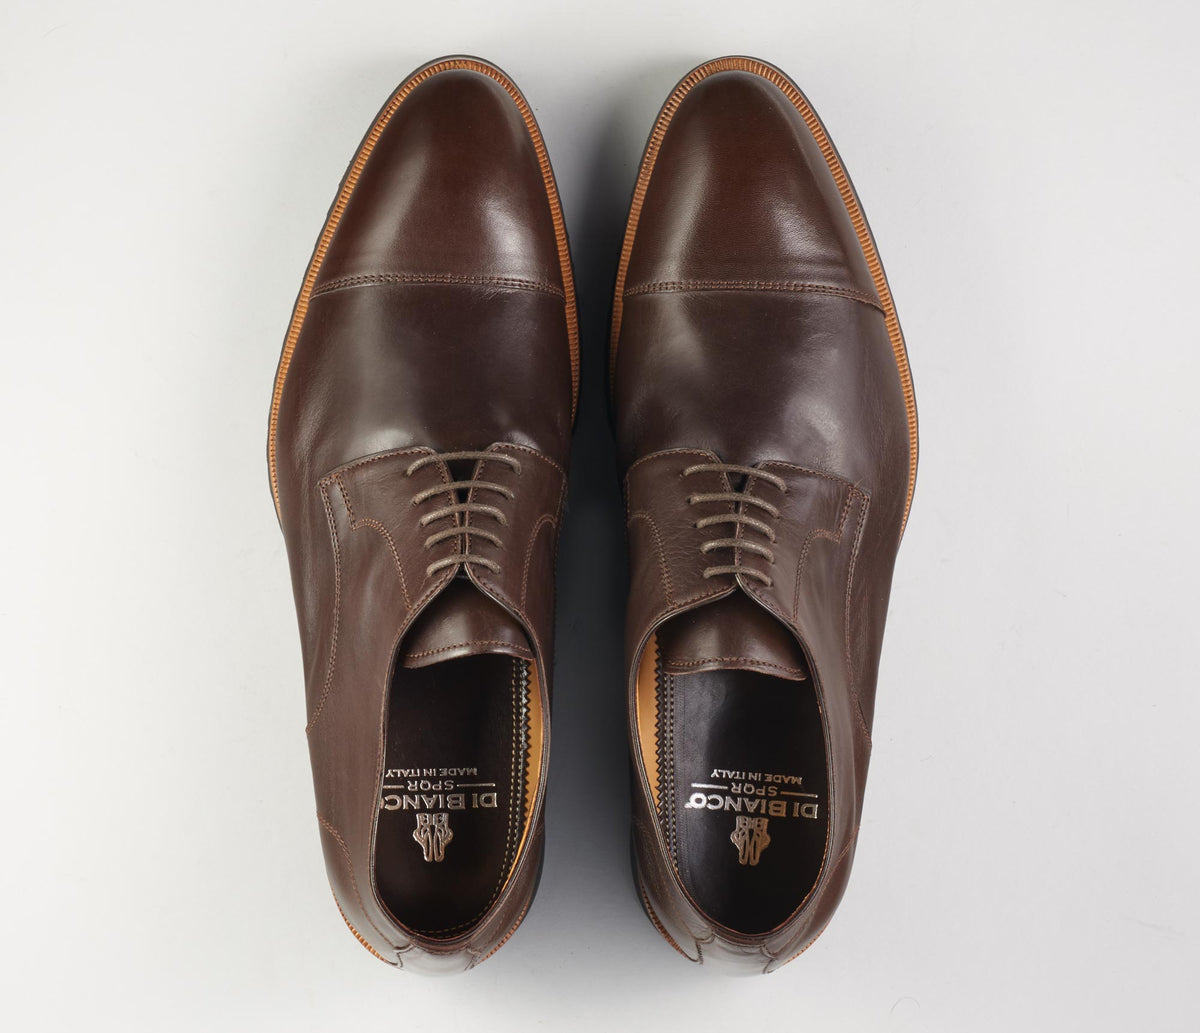 The Milano Bracken Men's Derby Shoes